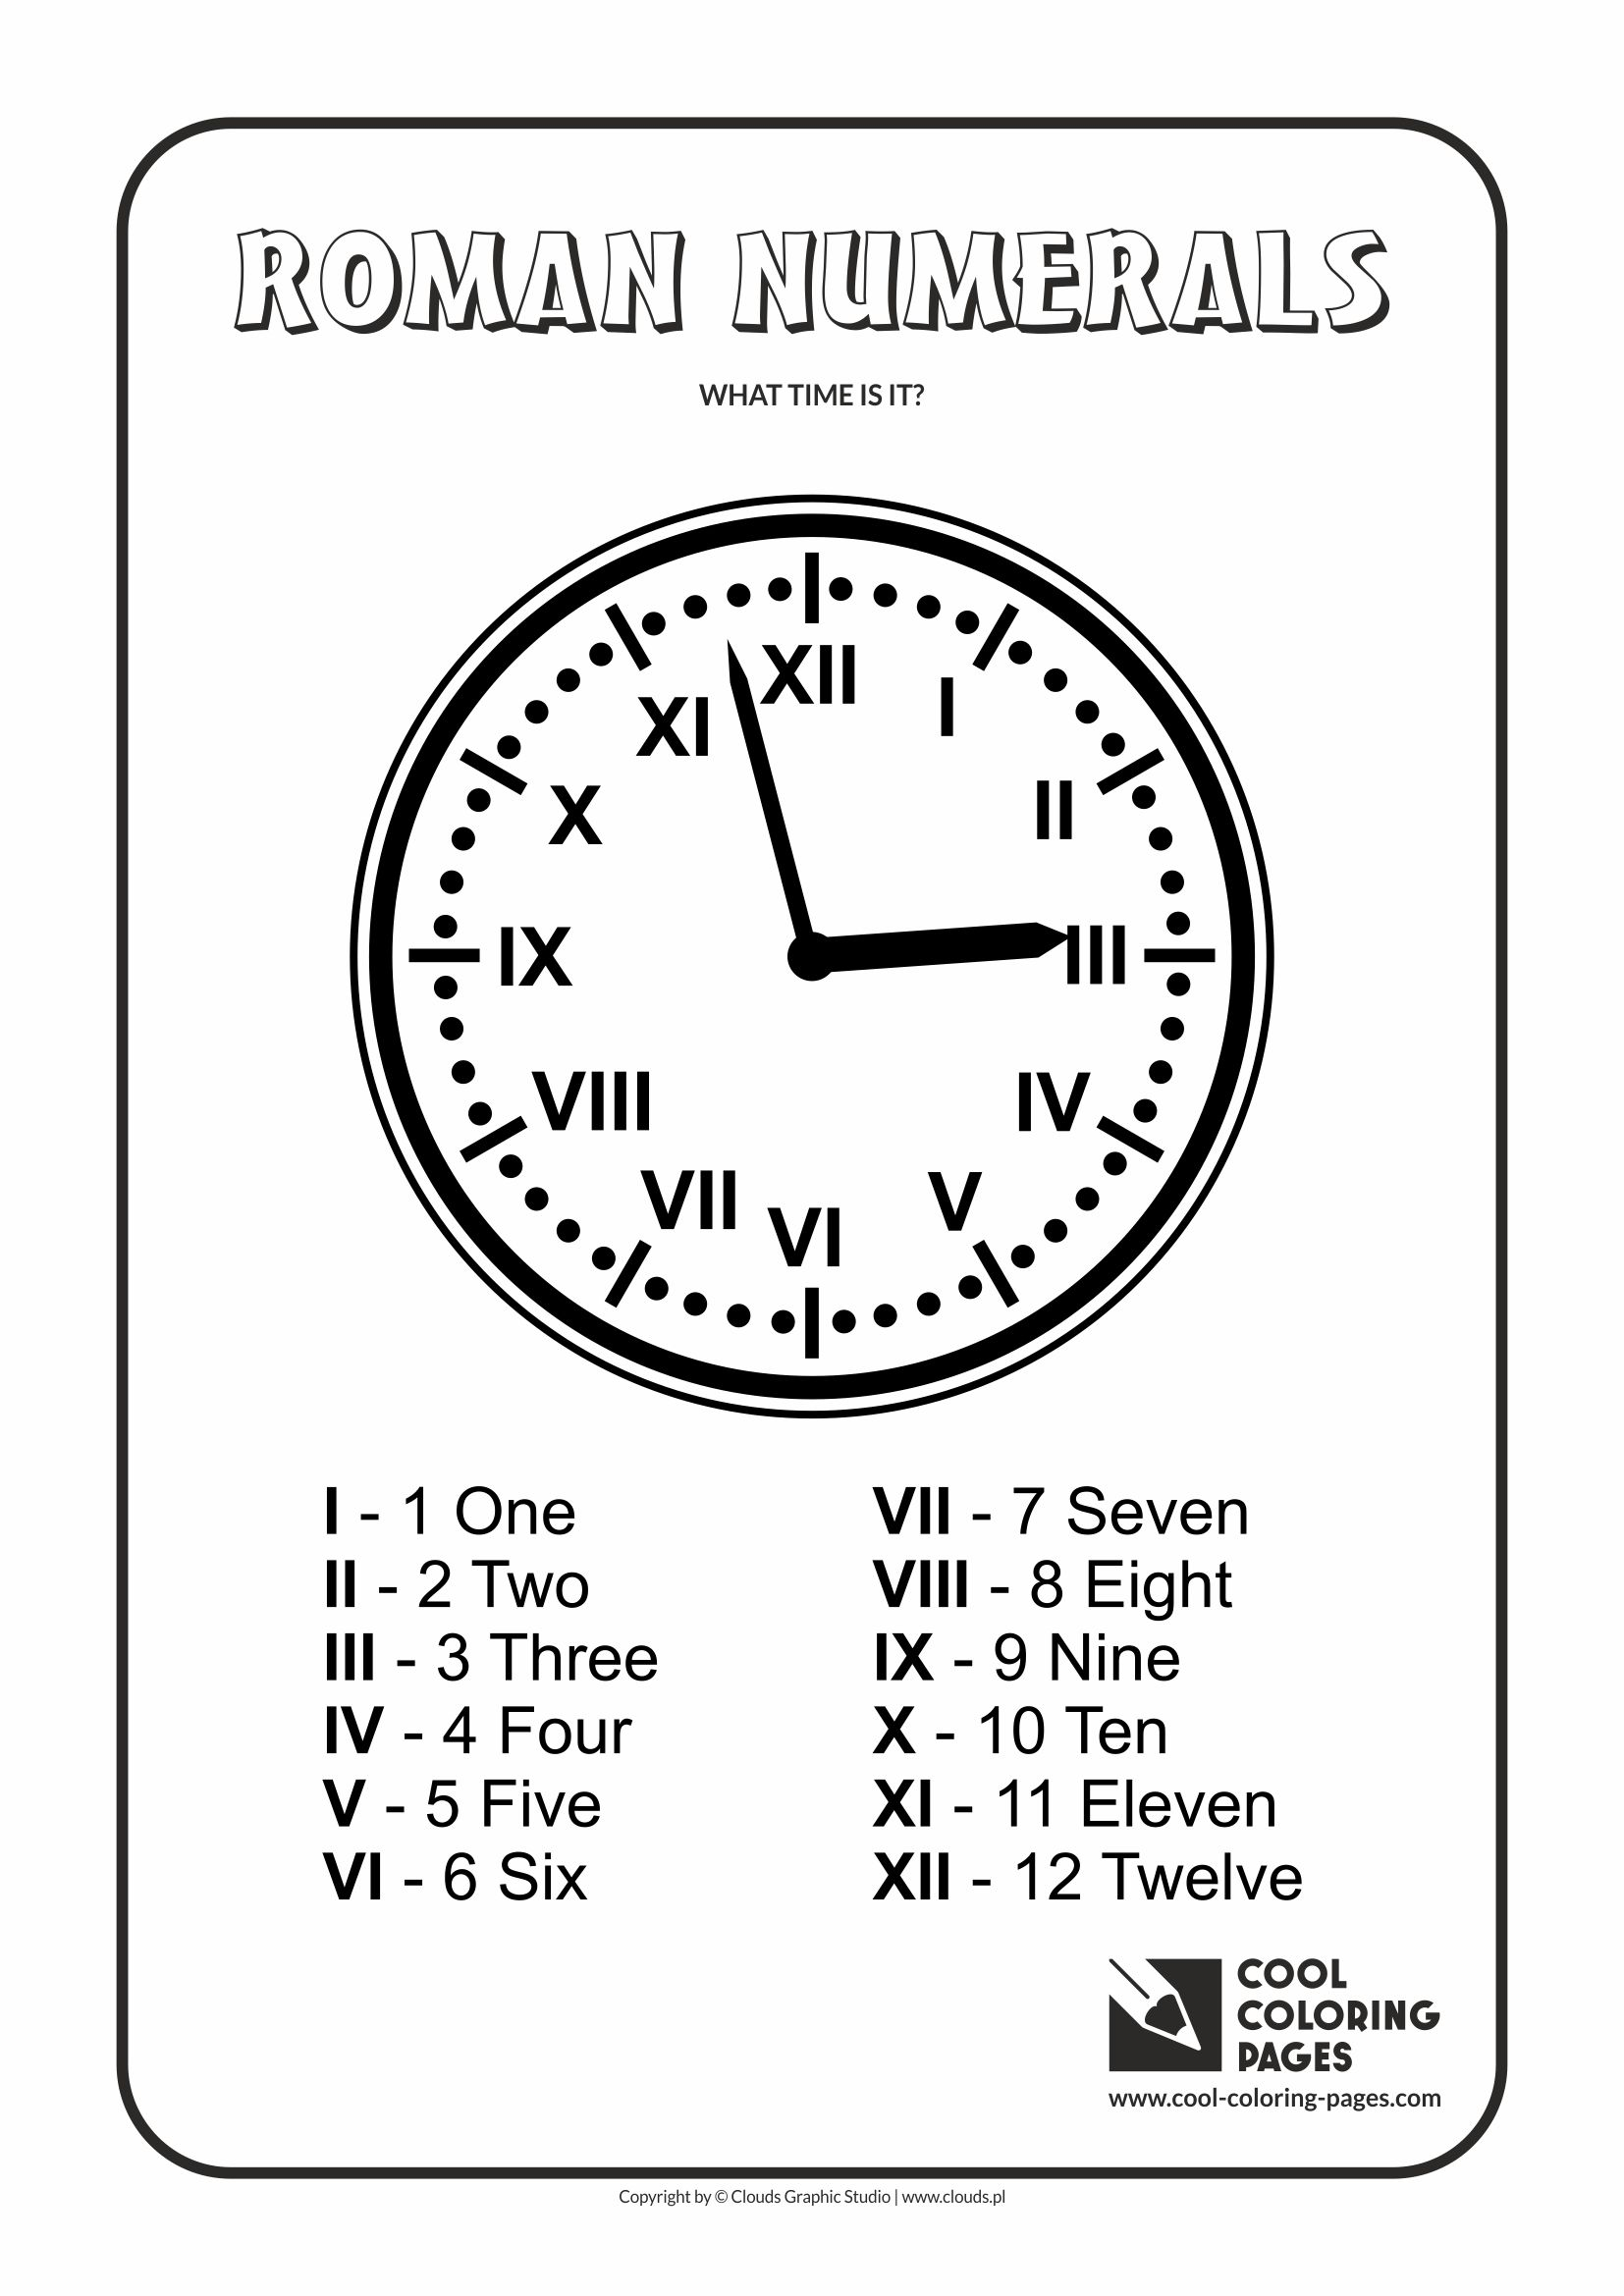 Roman Numeral Coloring Pages Coloring Pages